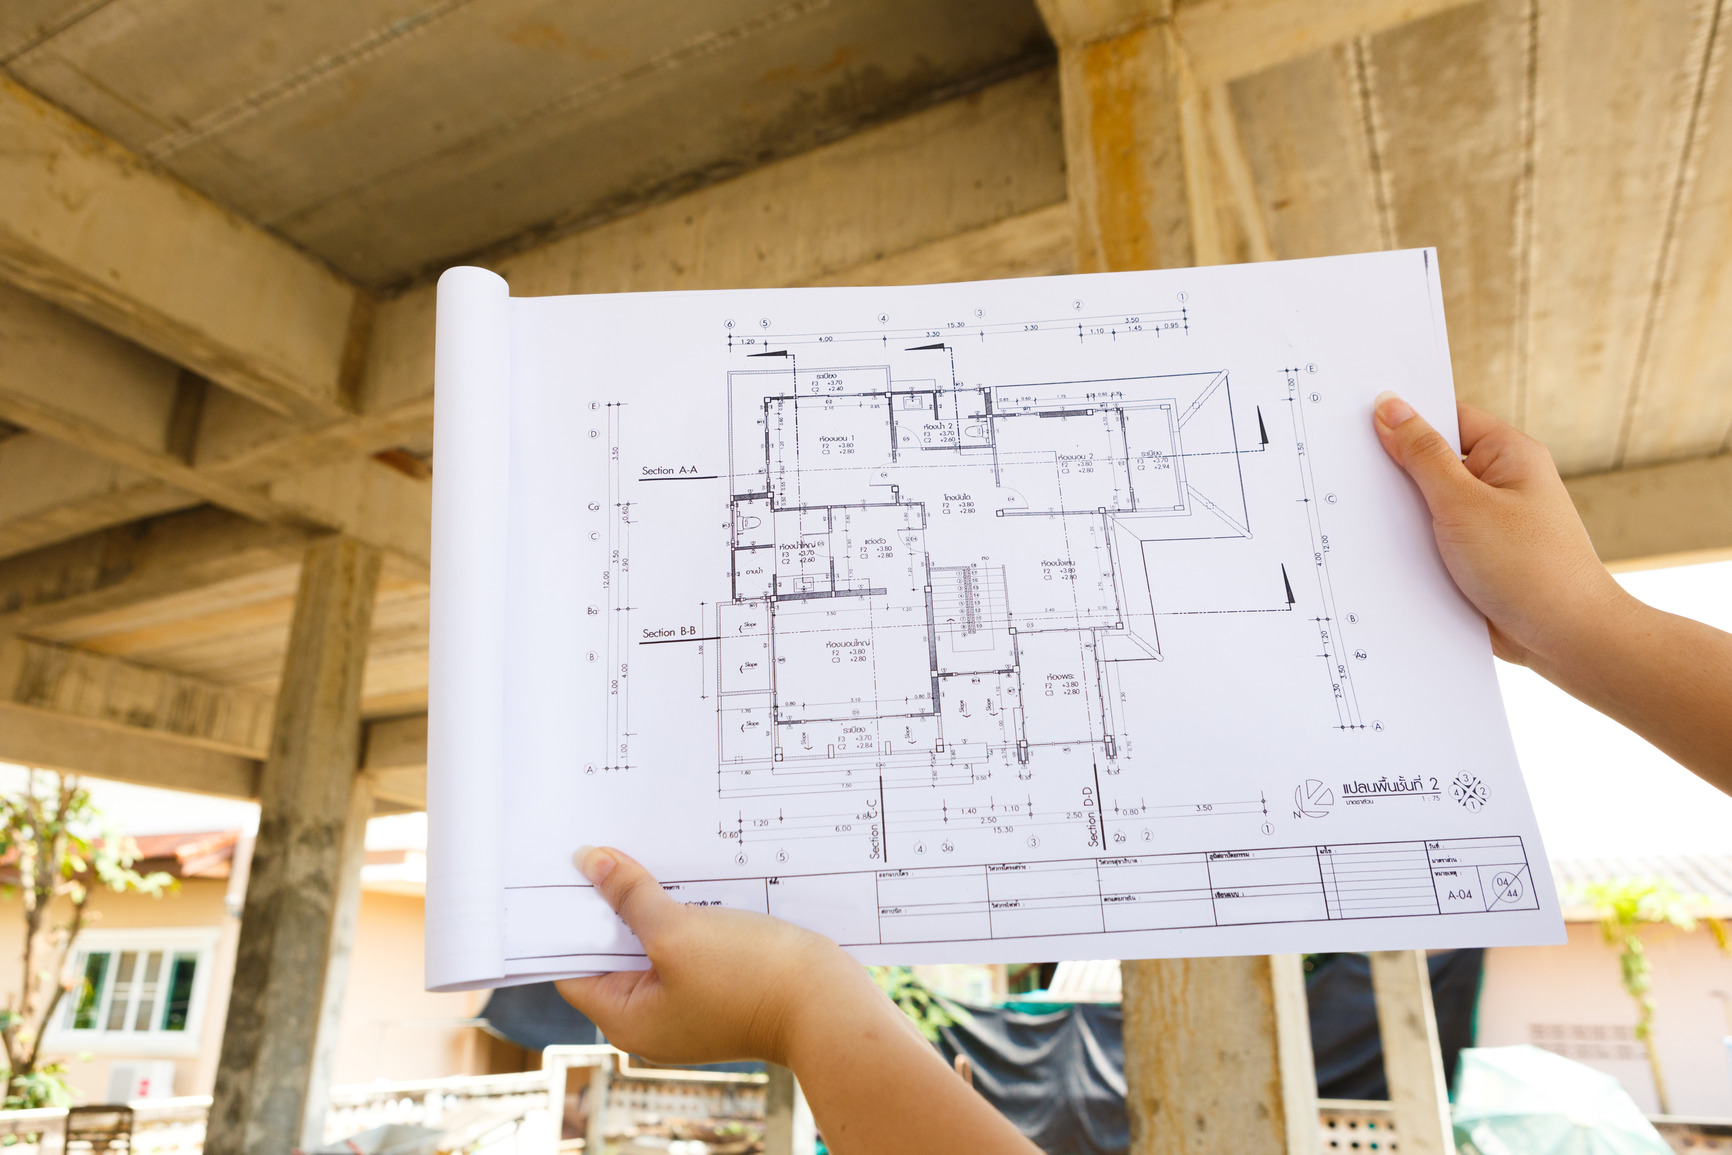 baeva architecture-drawings-in-hand-on-house-building-.JPG